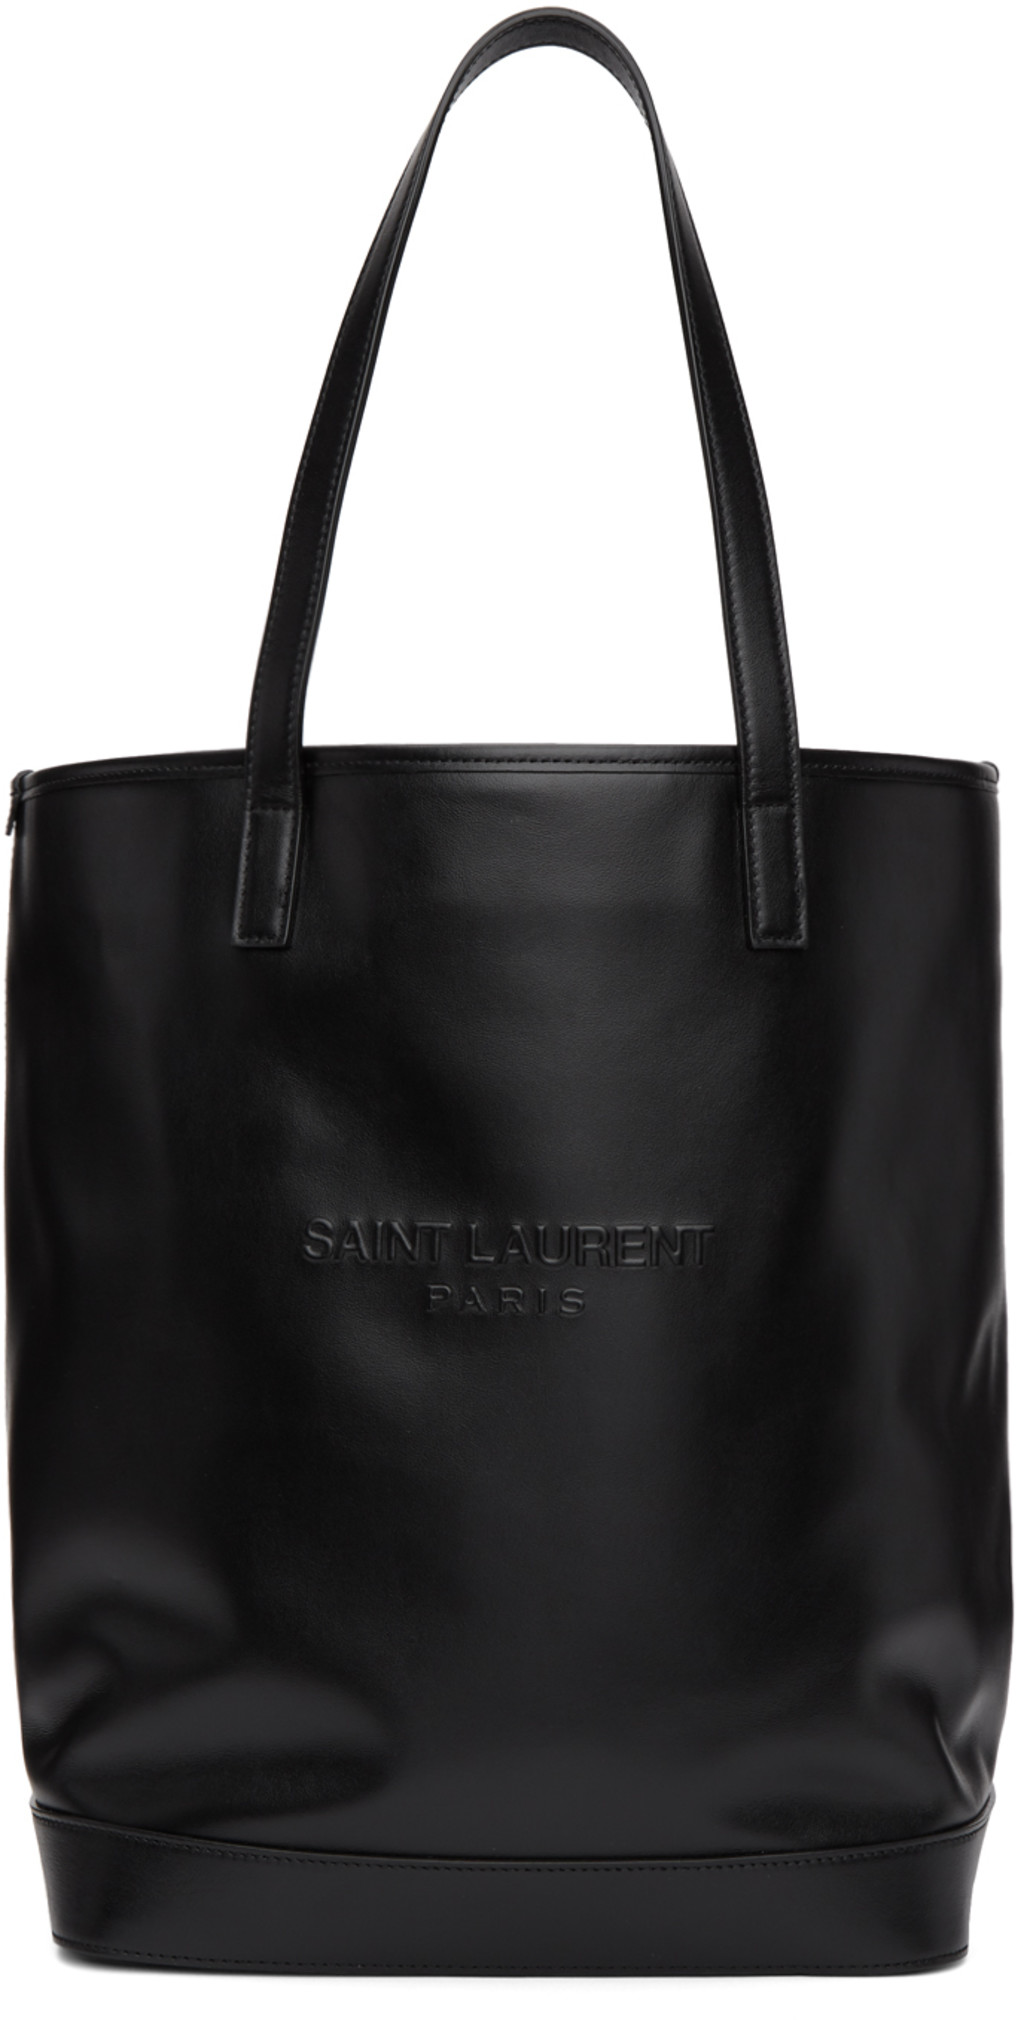 a81669fed4 Saint Laurent bags for Women